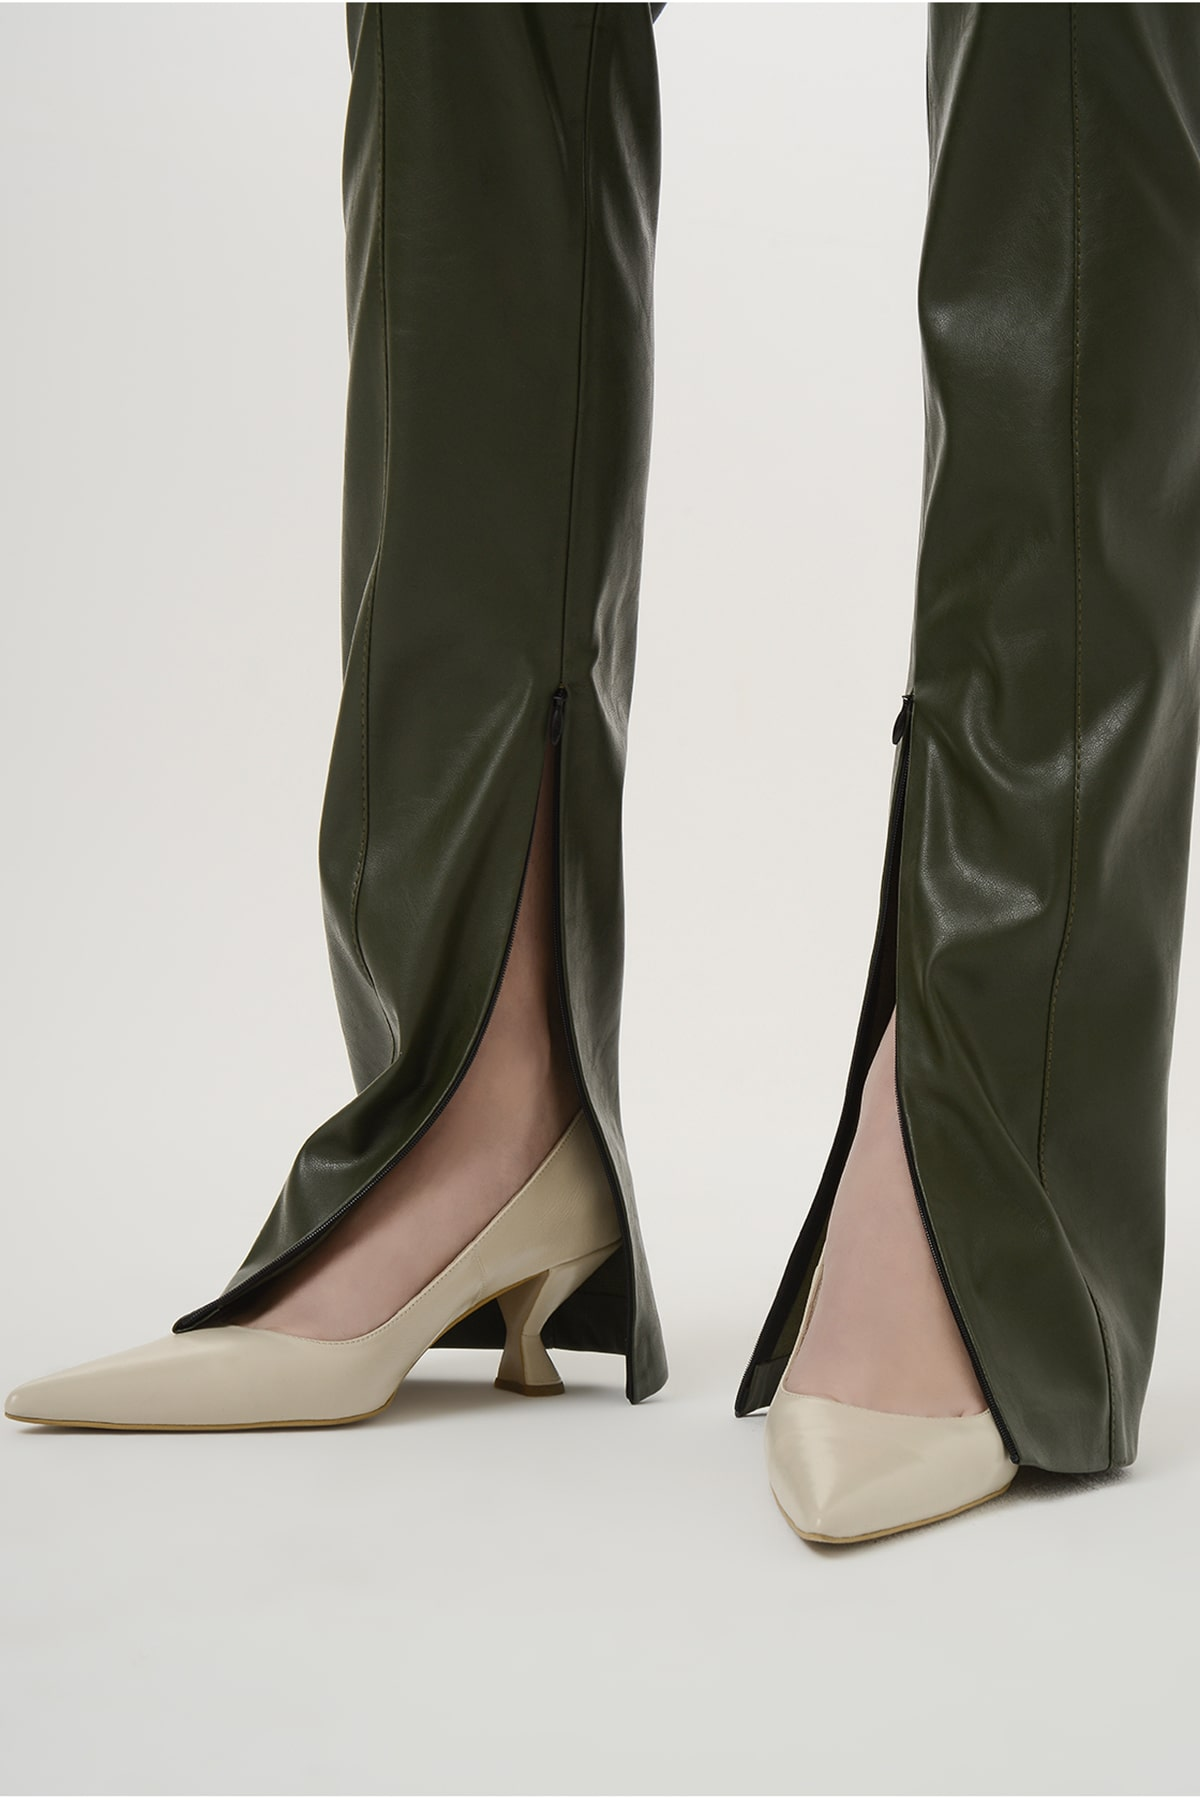 Straight vegan leather pants with zippers 3